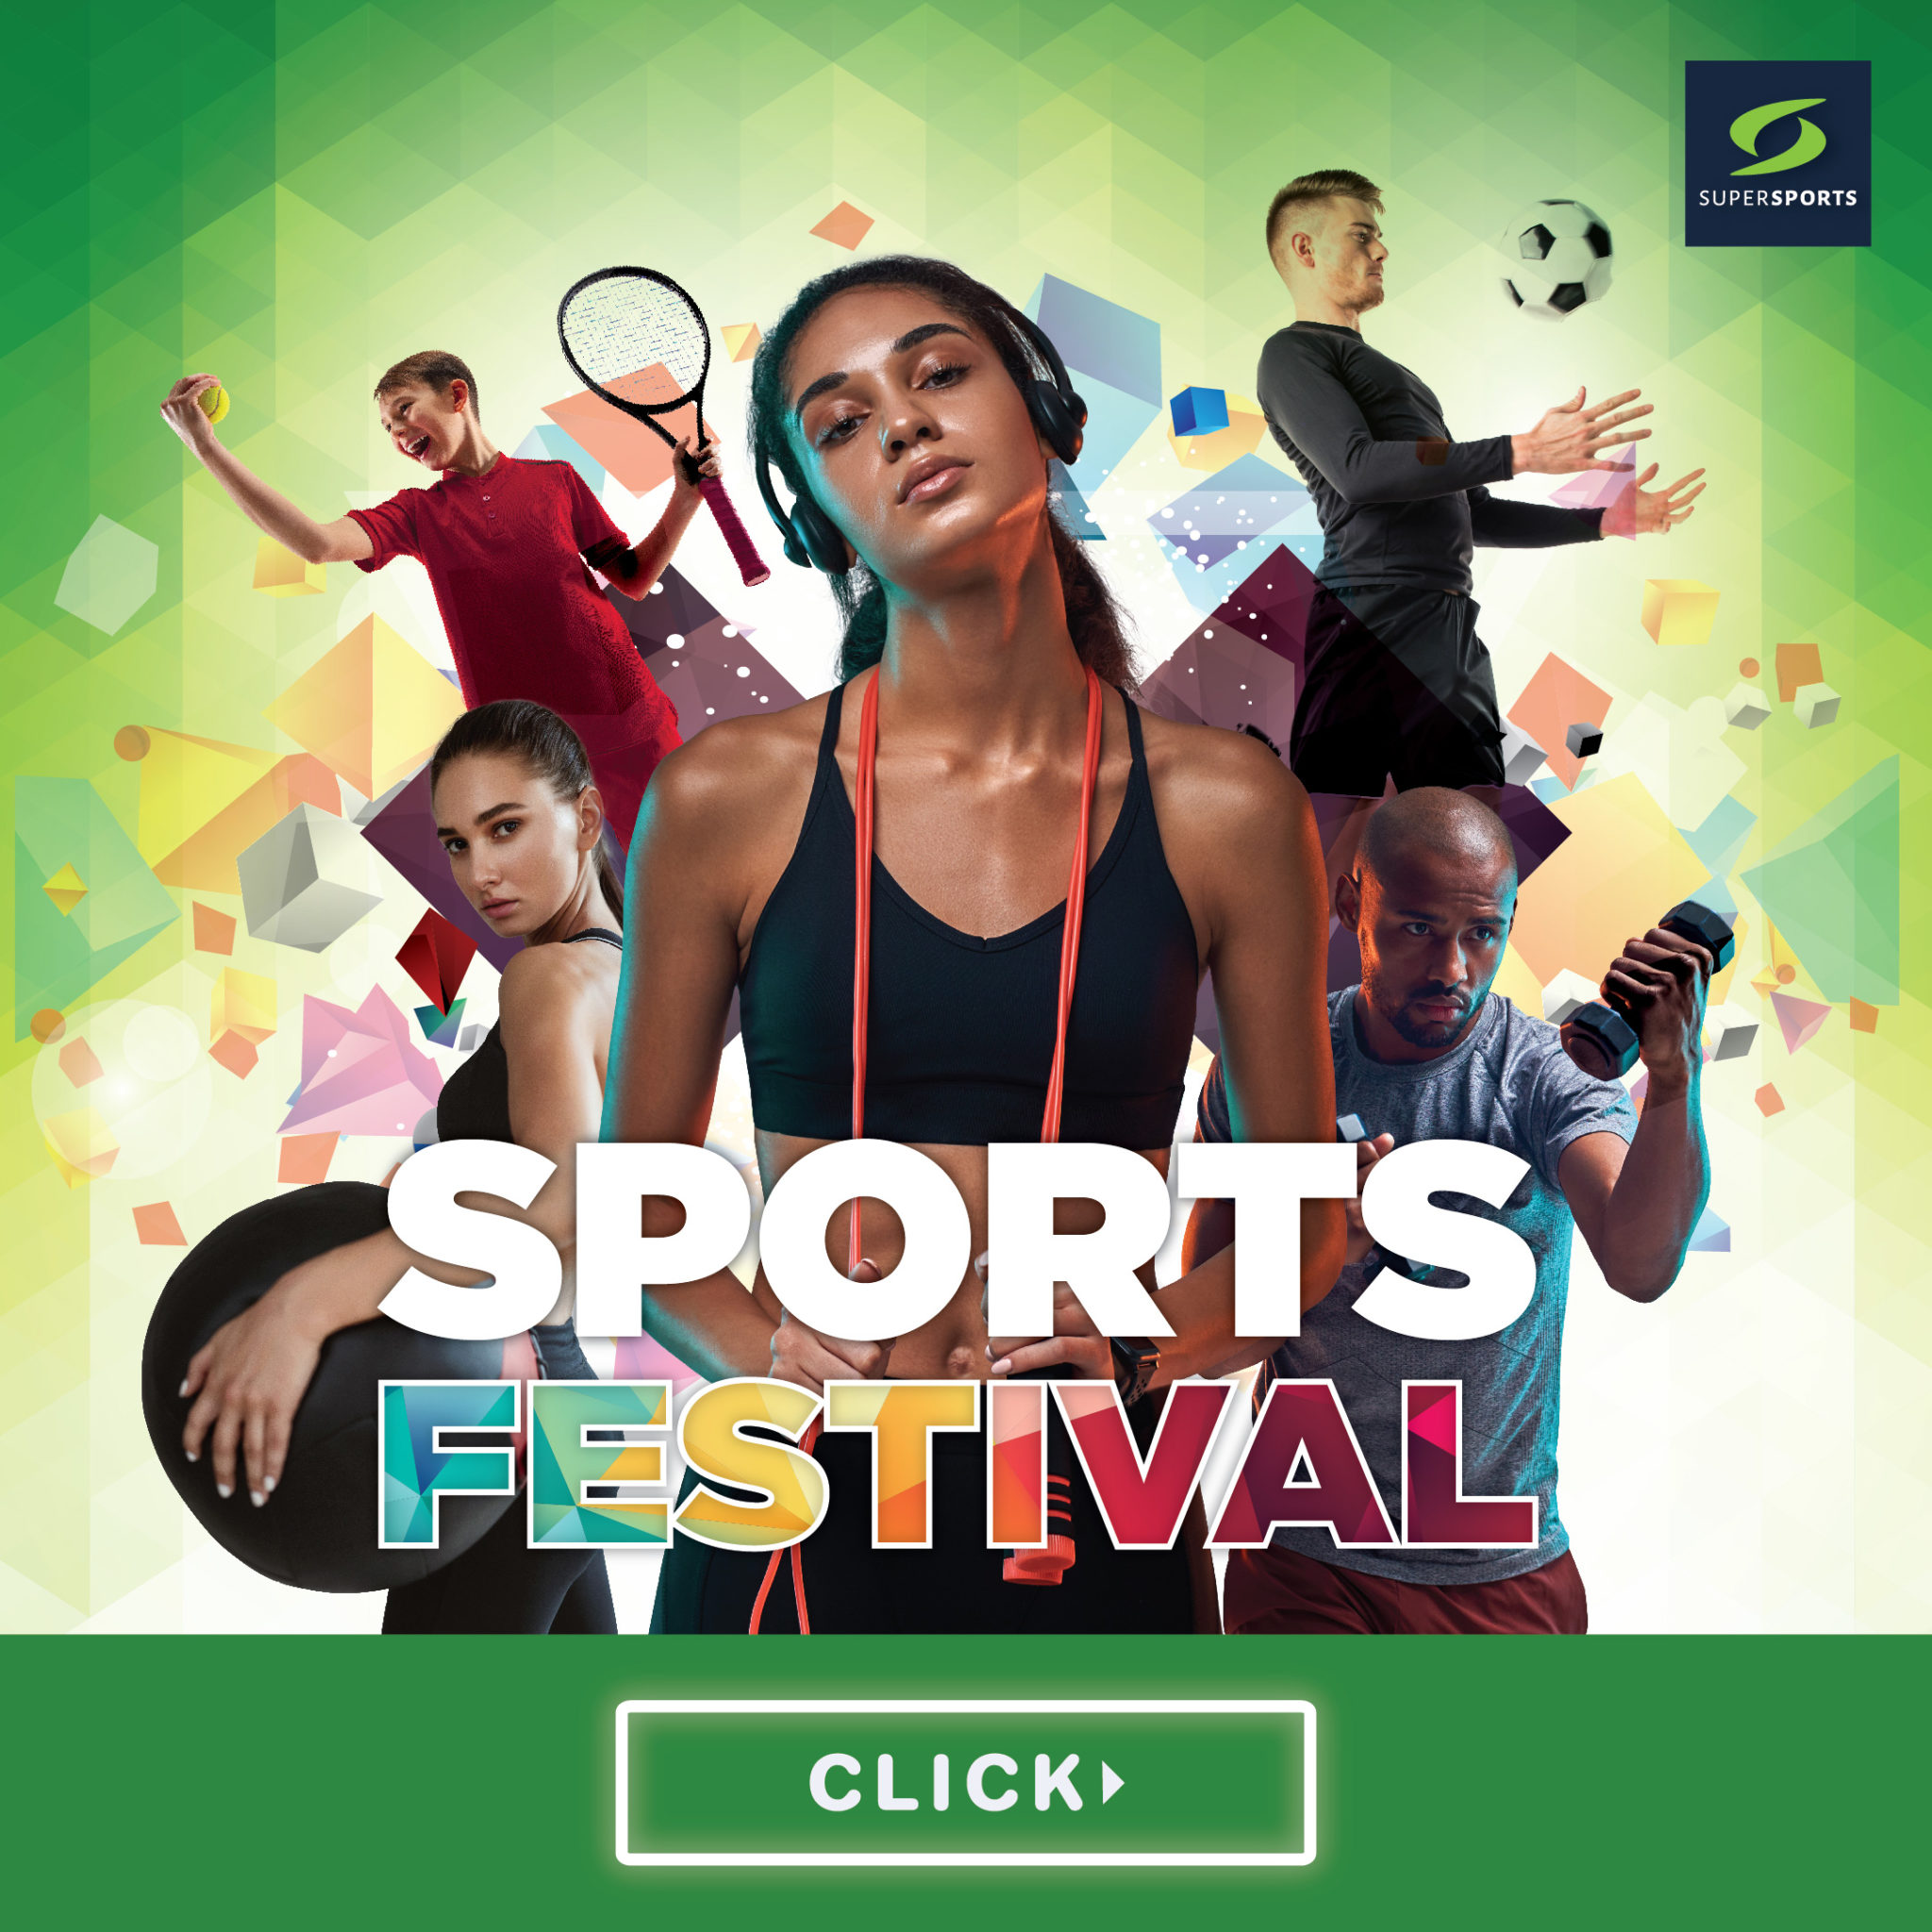 SUPERSPORTS SPORTS FESTIVAL